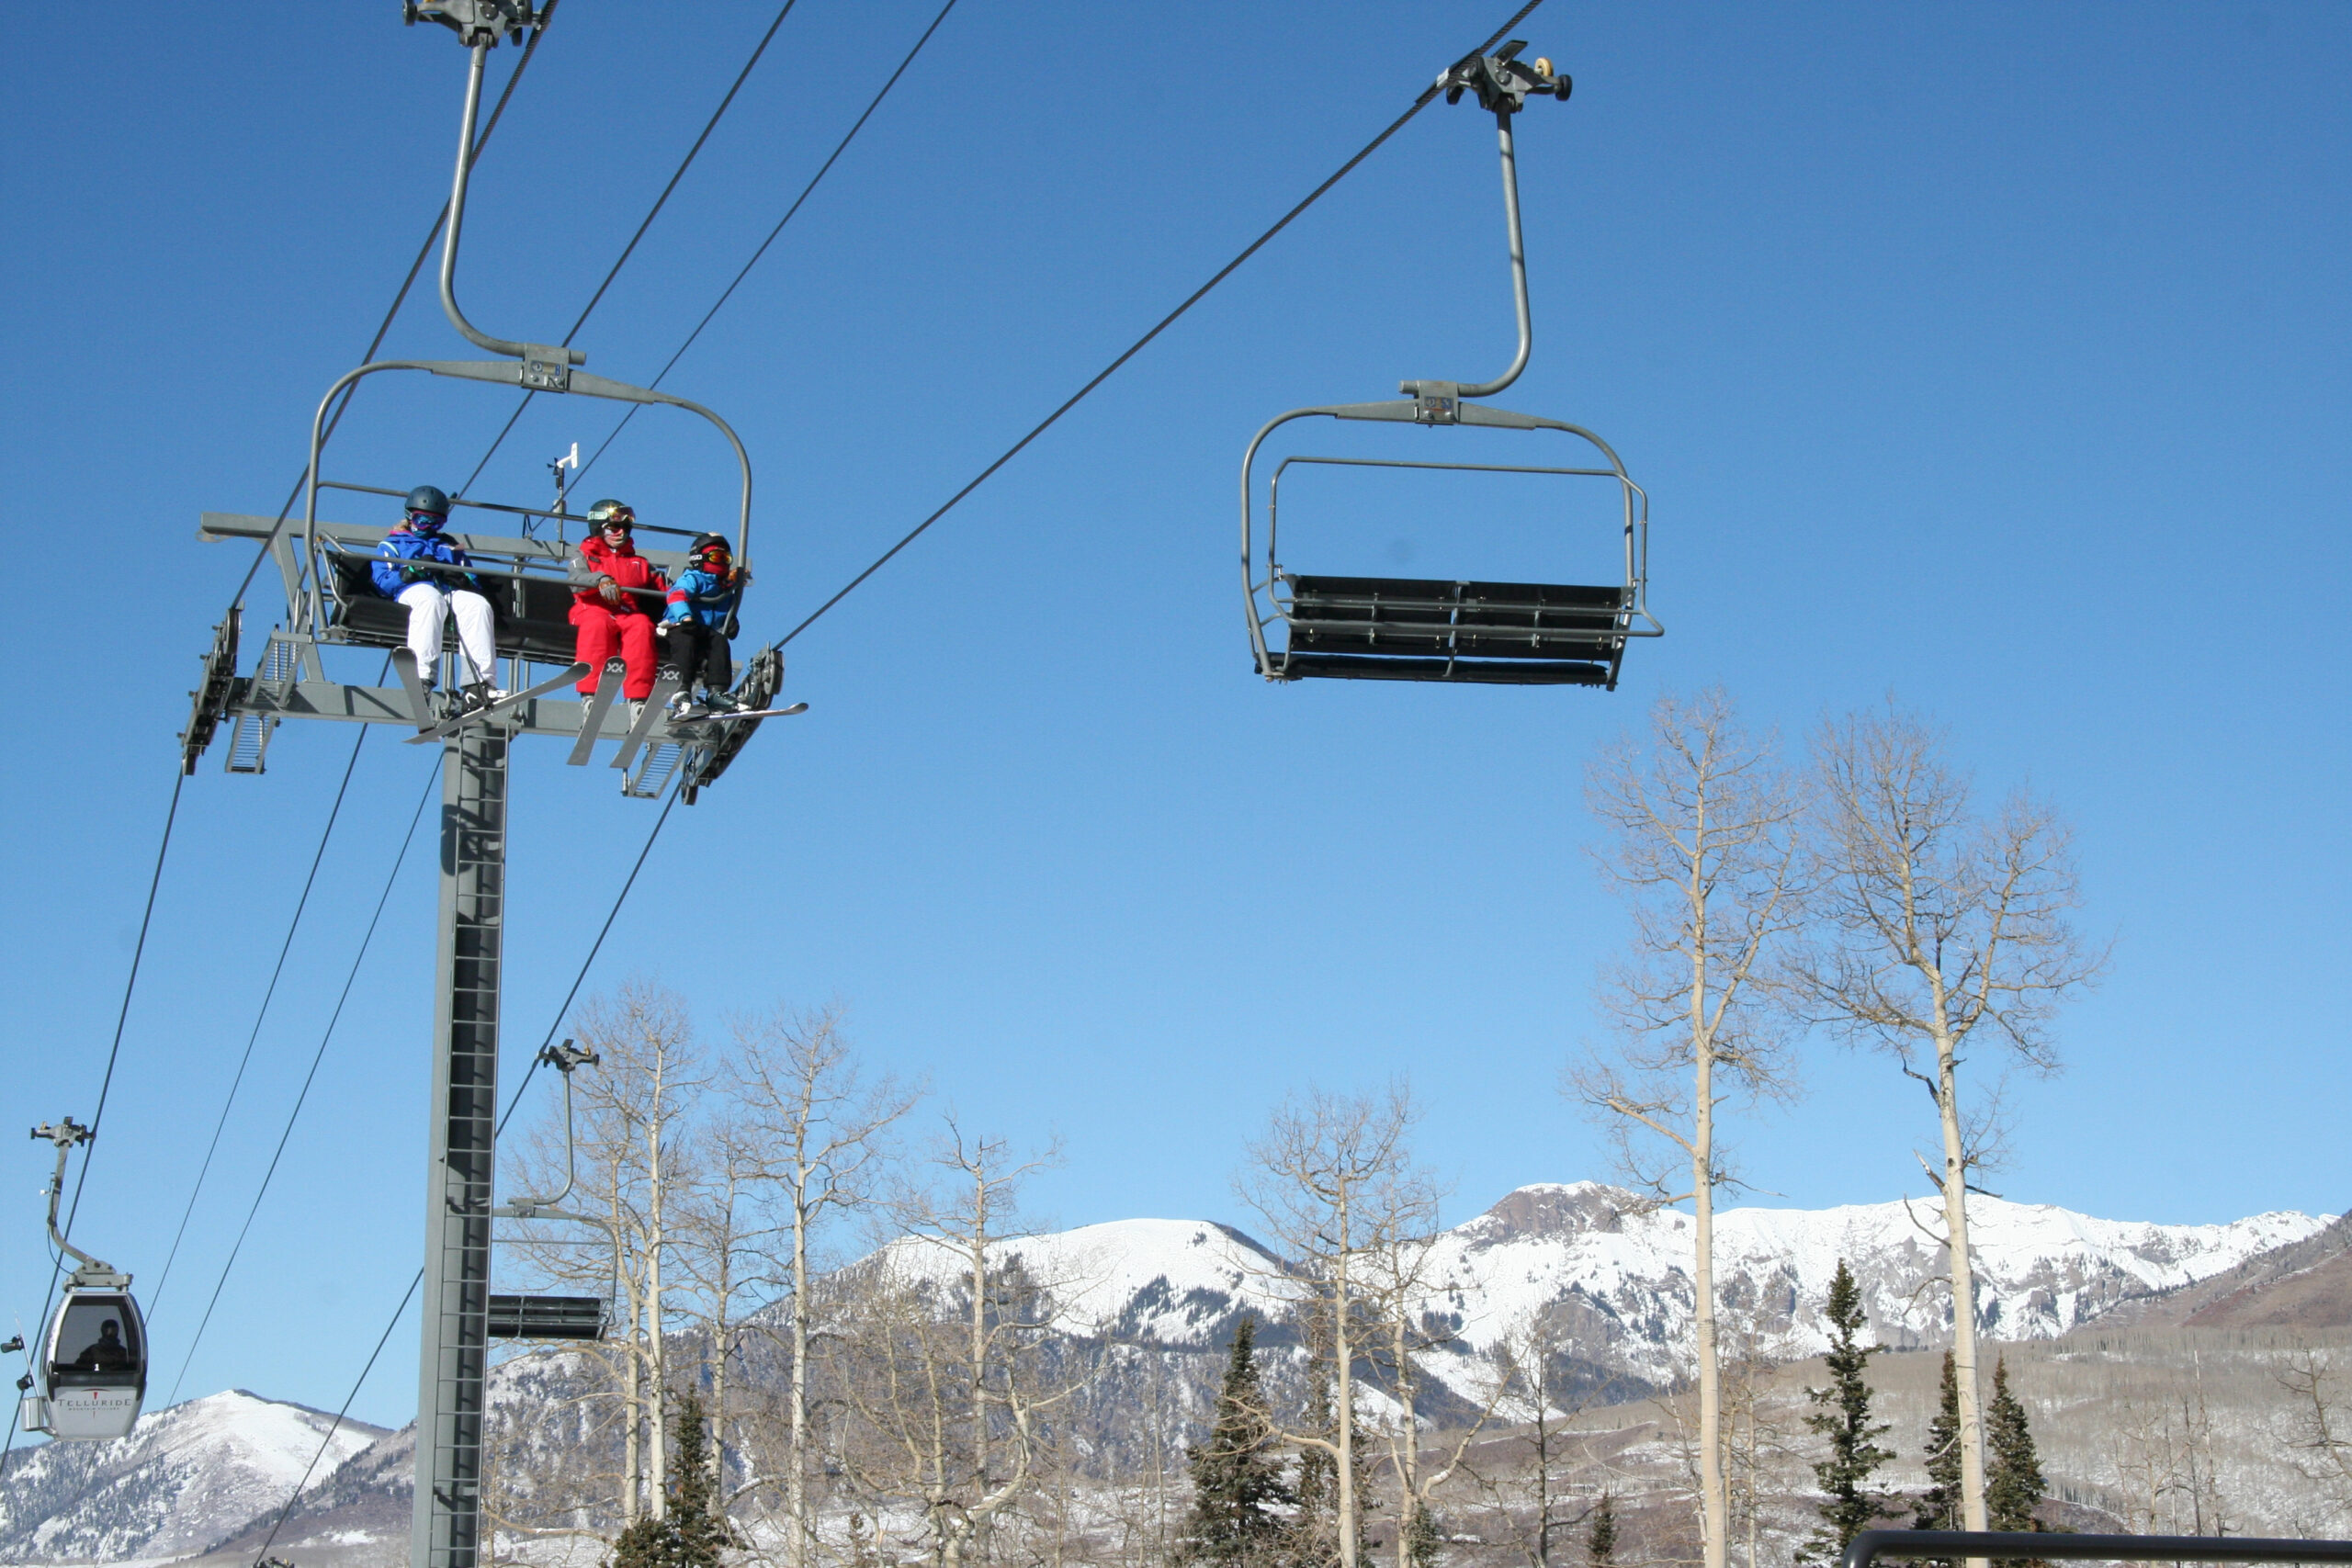 People from the same household can stand in line together and ride Telluride's lifts next to one another, but when riding a lift with someone from another household, guests are asked to leave a vacant seat between them.